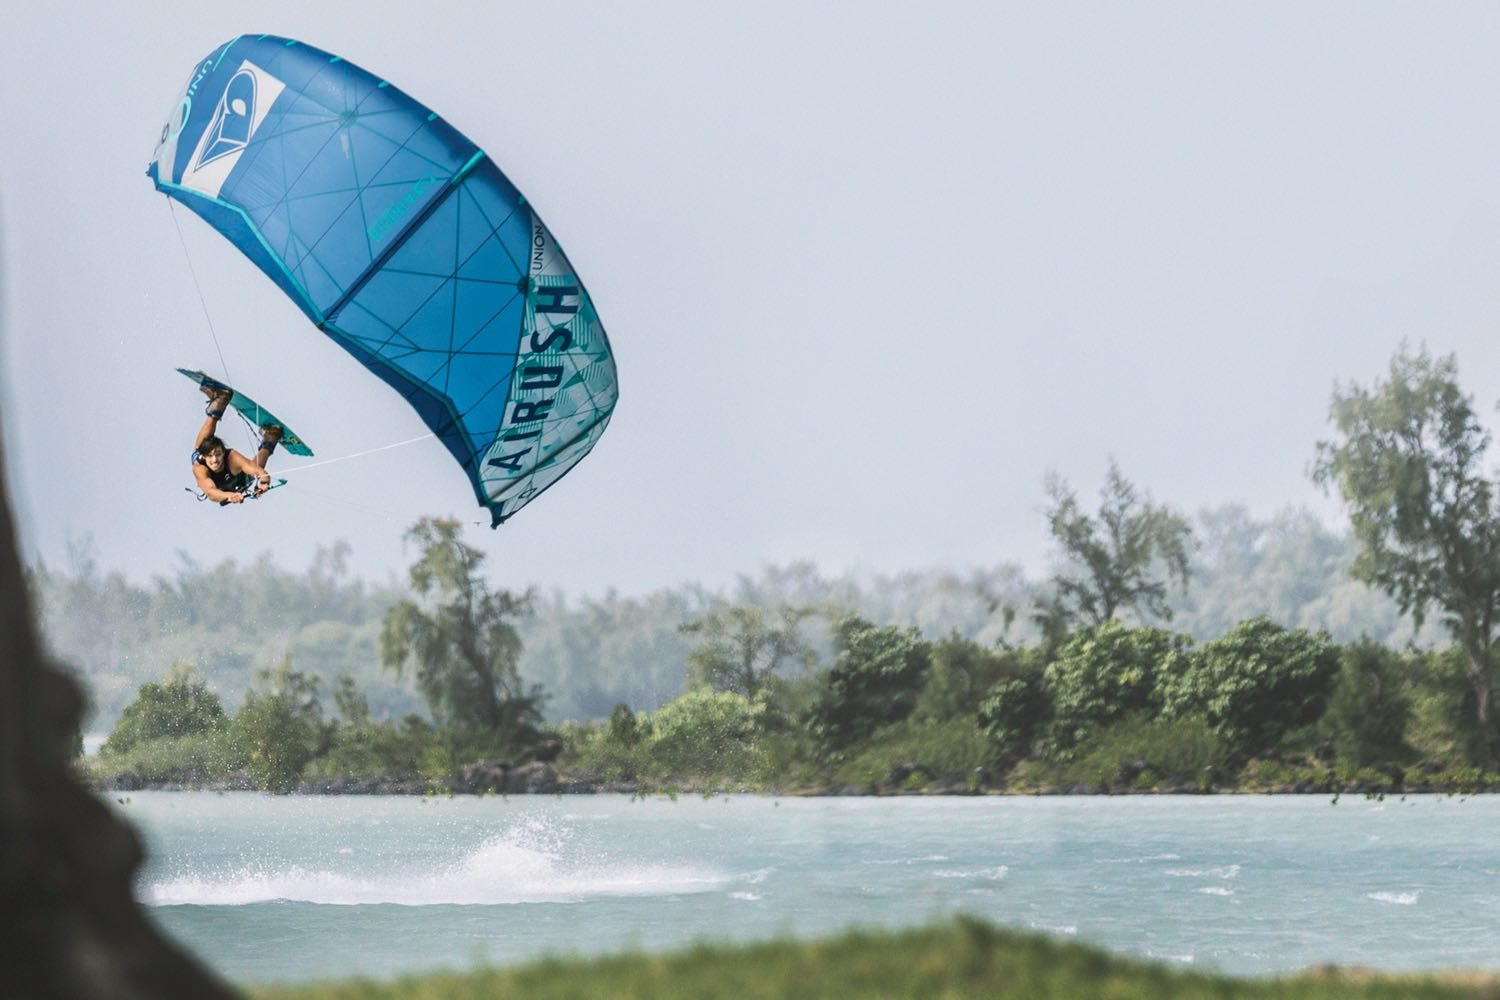 Airush Union III 2018 Kite